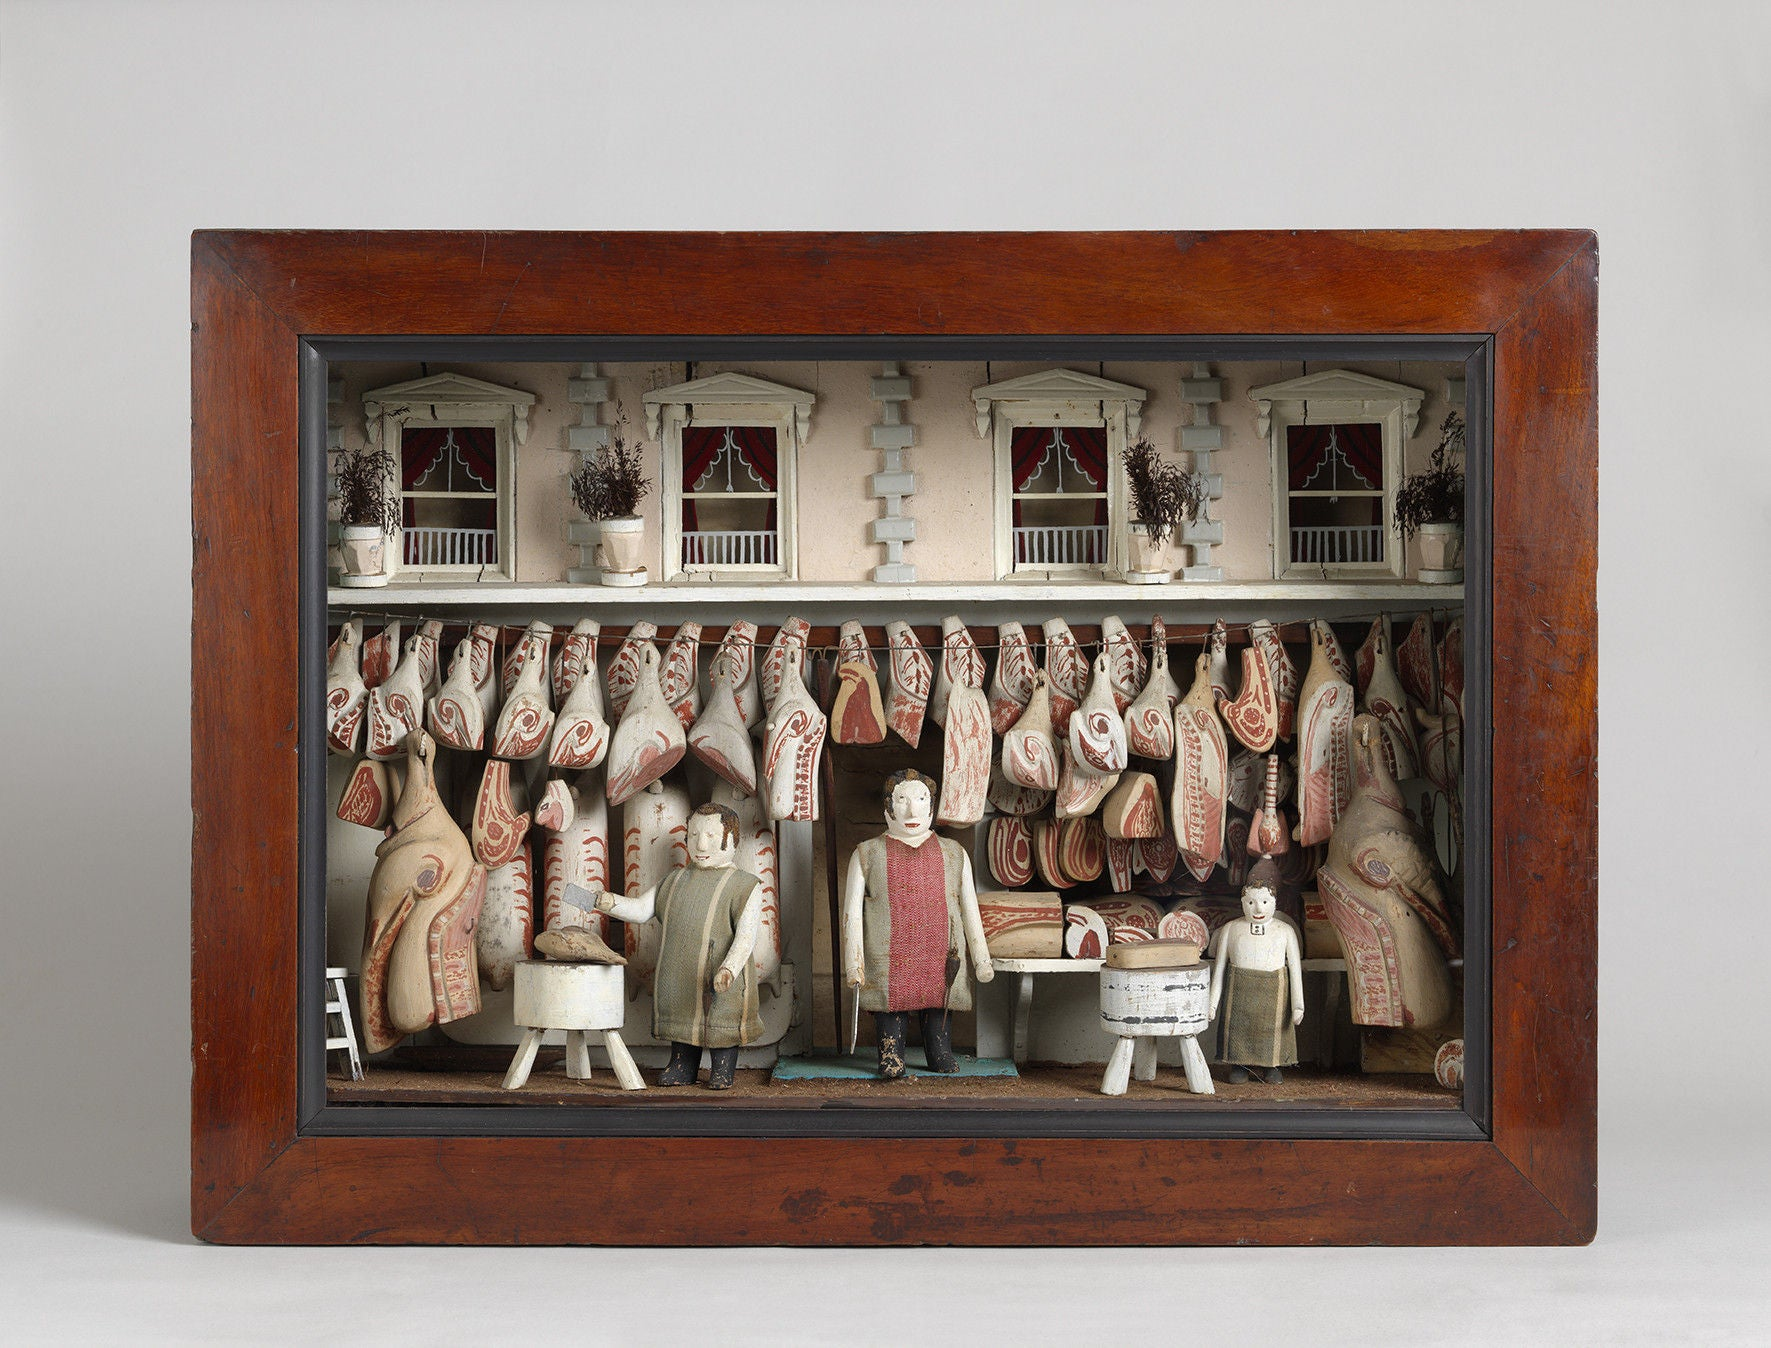 Remarkable Butcher's Shop Diorama